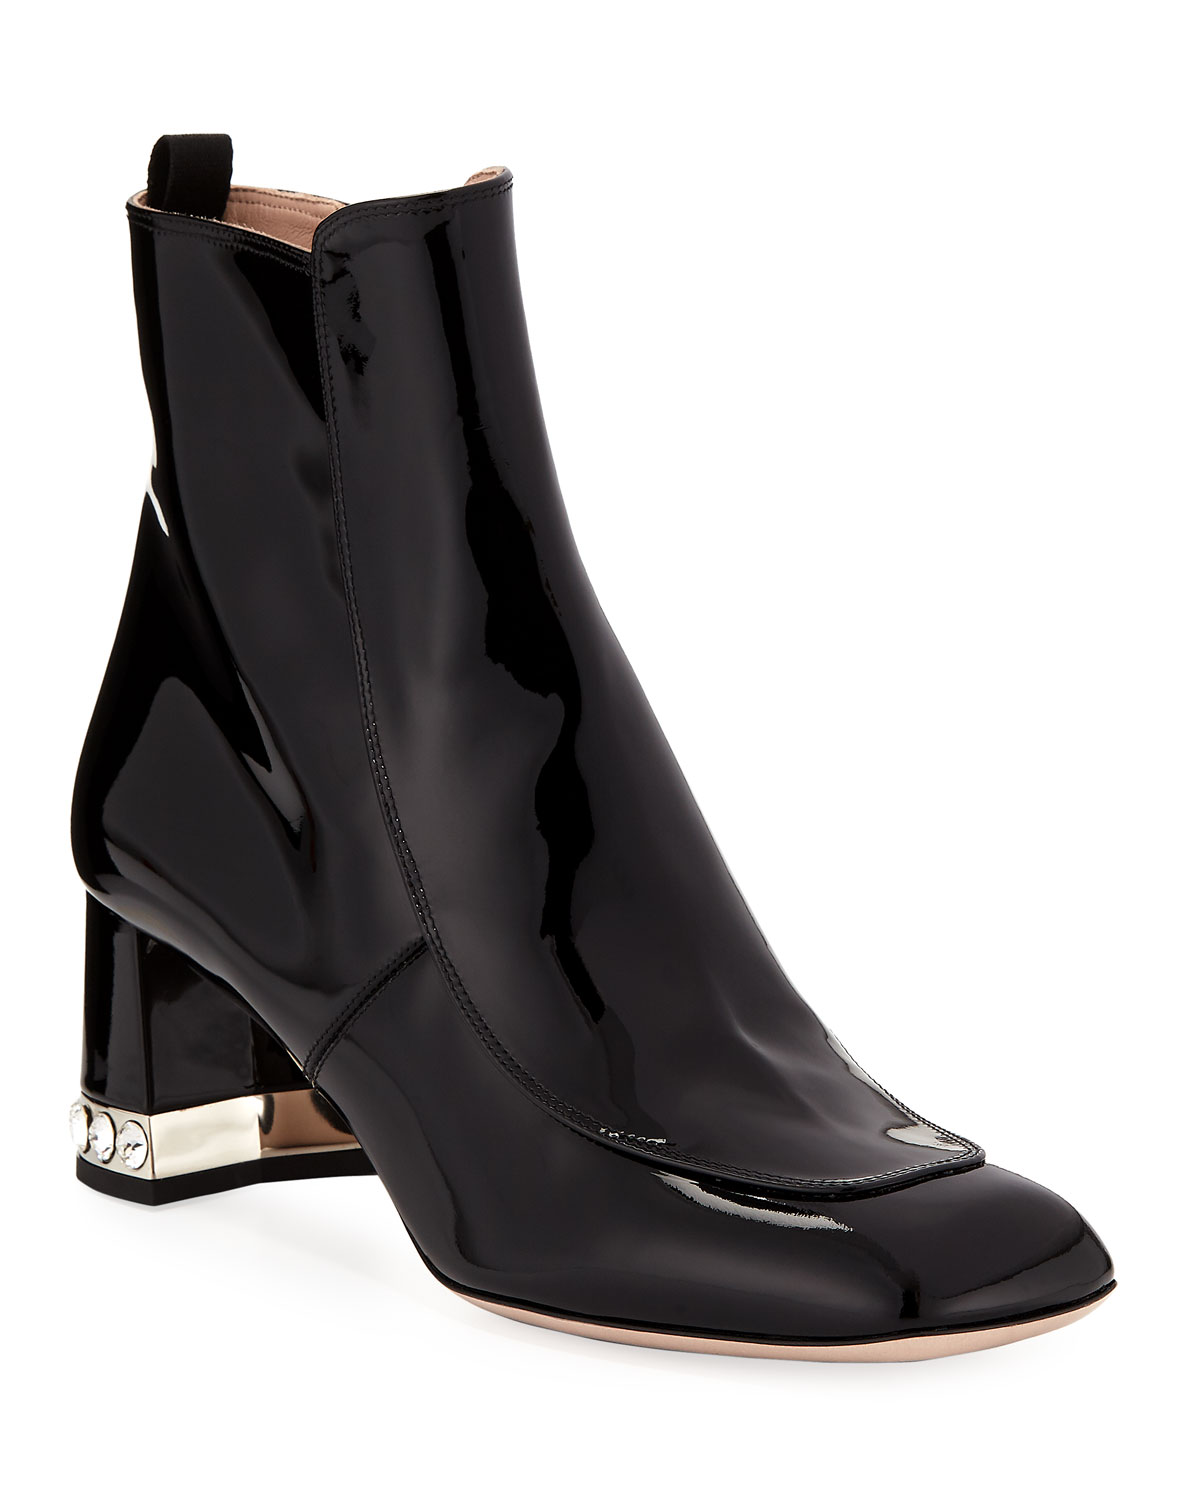 620f3edc4ea Miu Miu Patent Leather Block-Heel Ankle Boots